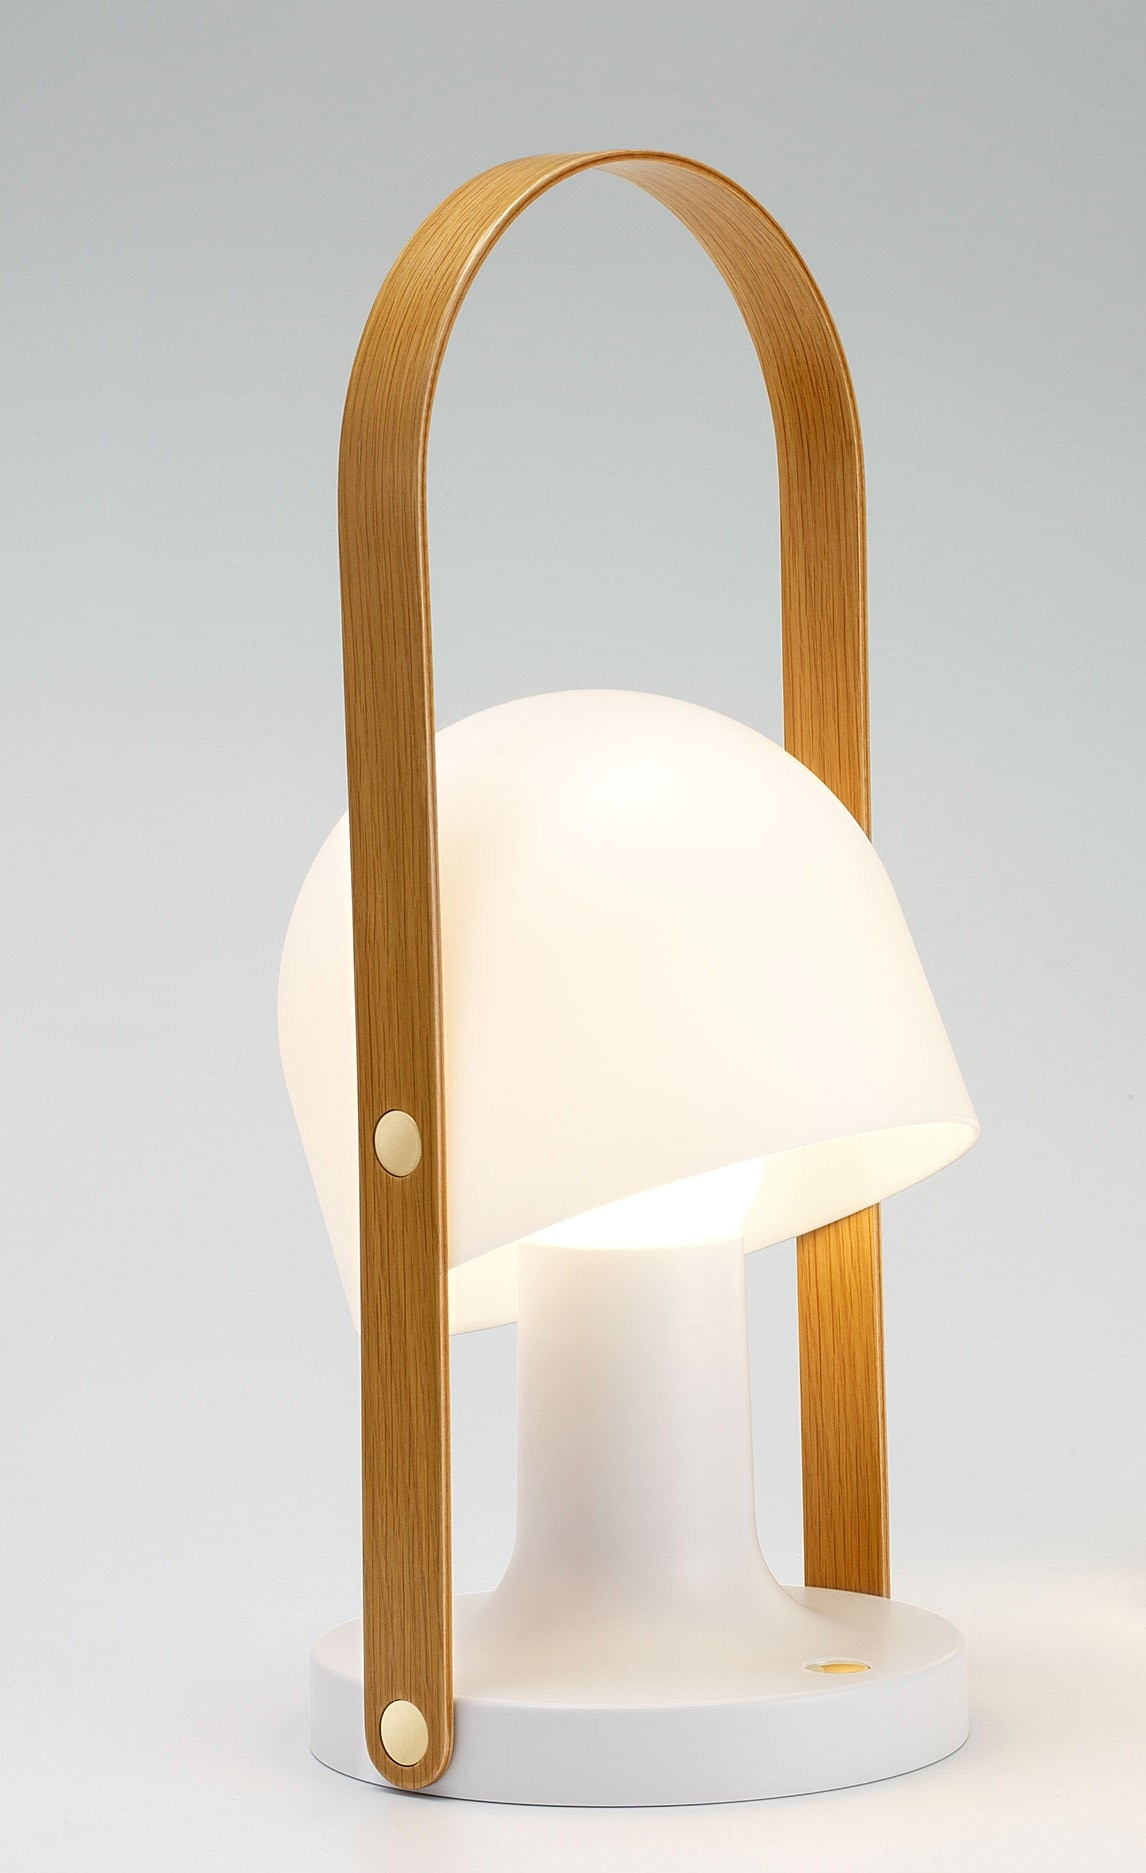 Marset FollowMe Plus Table Lamp (Priced Each, Sold in Sets of 2)